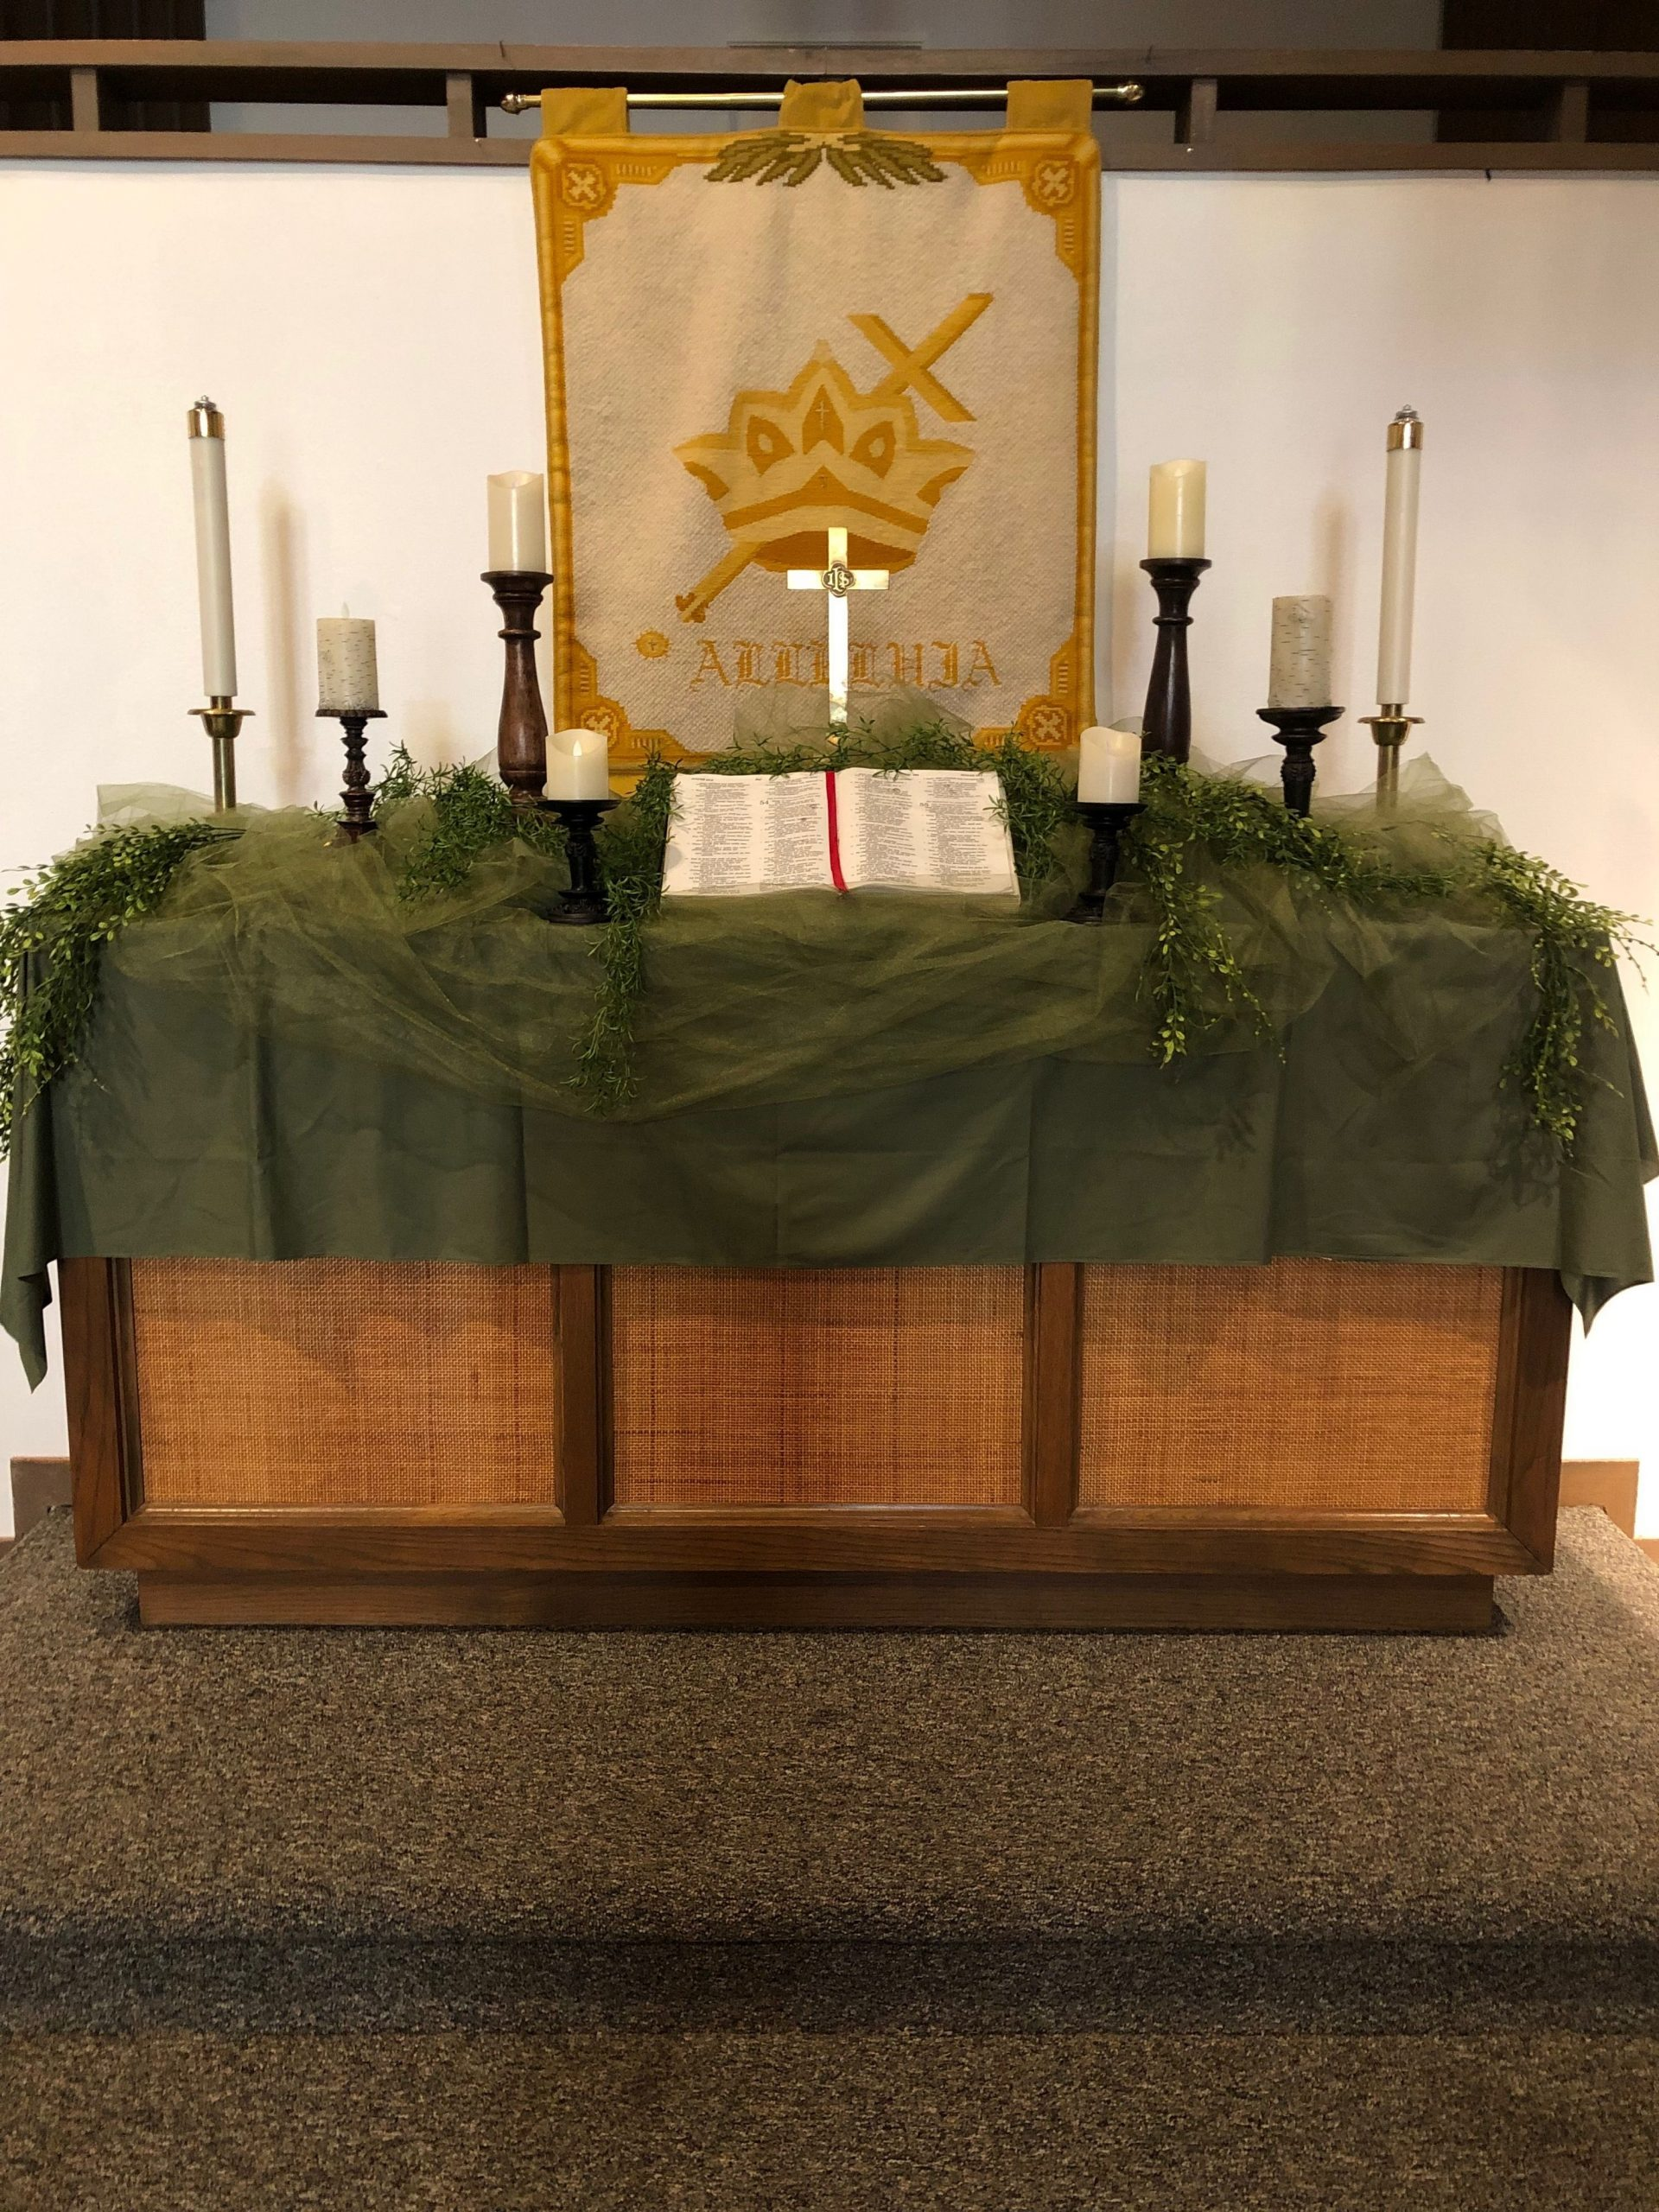 Pin By Ruth Sharp On Umc Altars | Green, Greenery, Altar